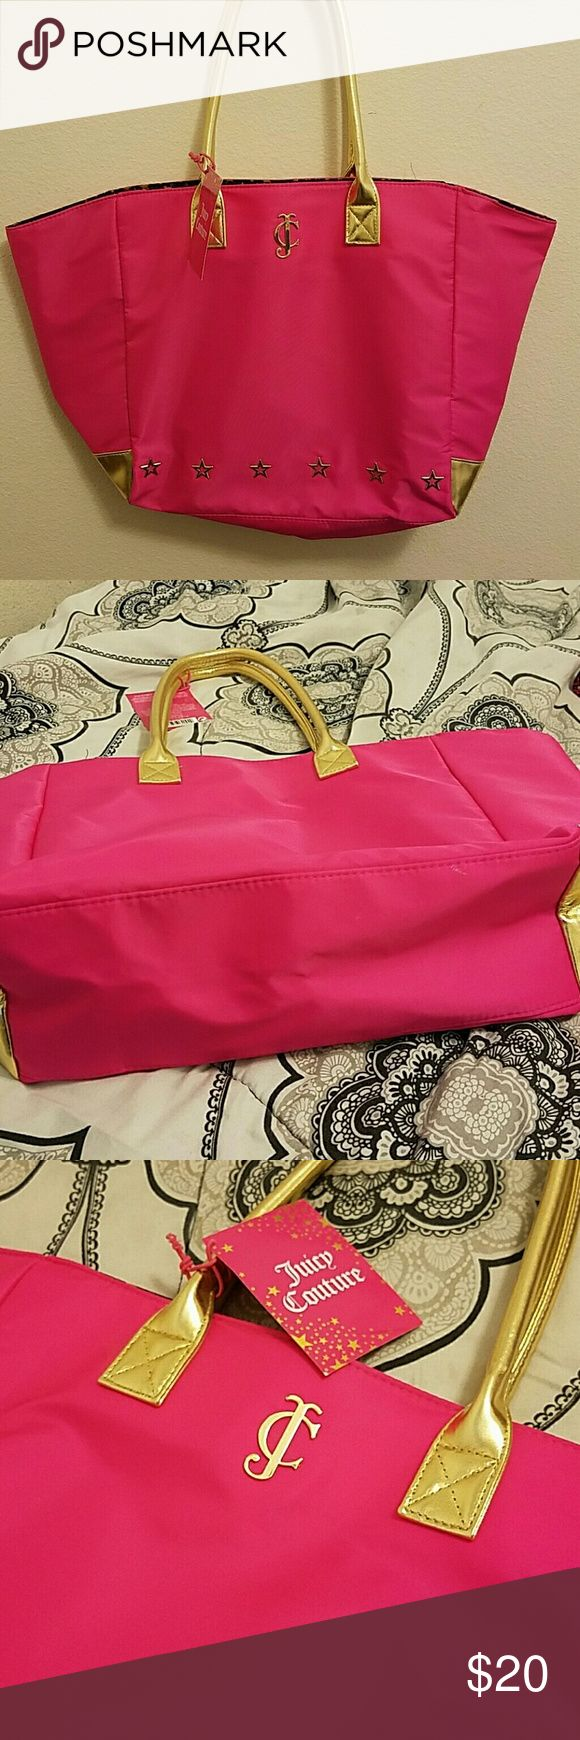 Juicy Couture Tote Bag Pink with gold tote bag, New never used. Authentic! Juicy Couture Bags Totes